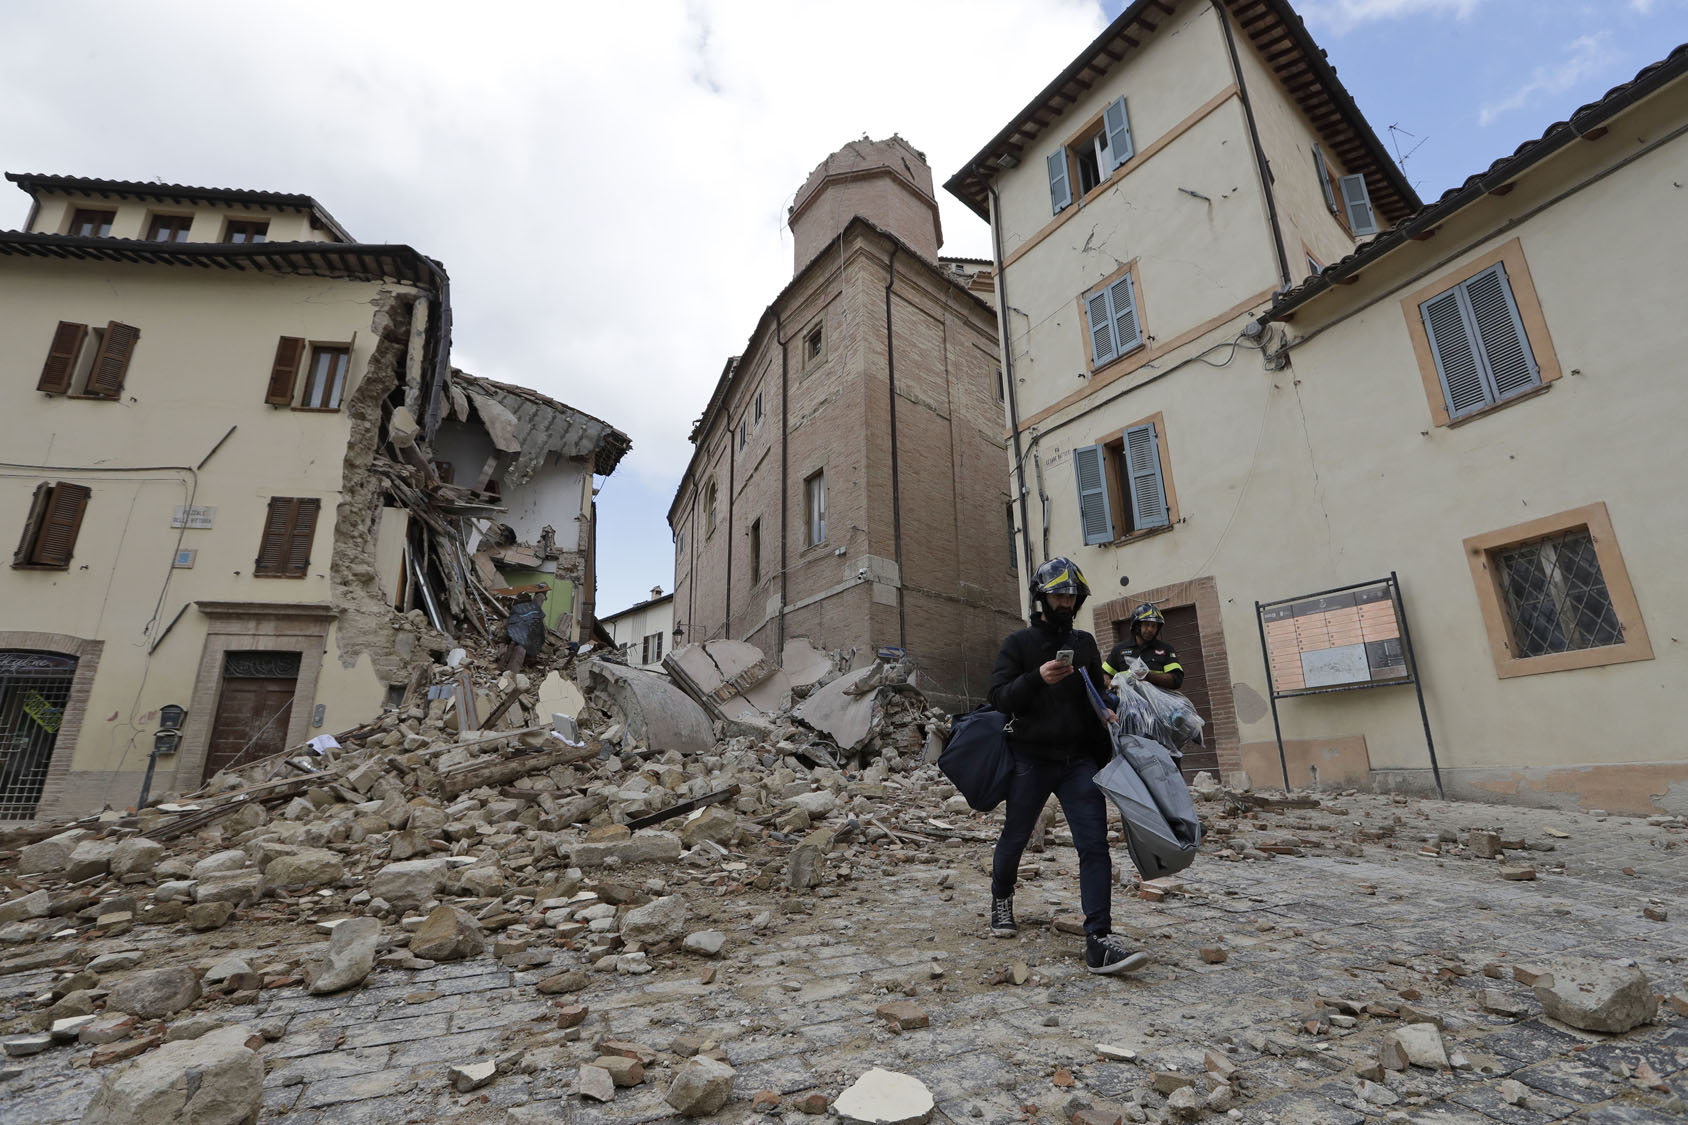 Thousands displaced by earthquakes in central Italy